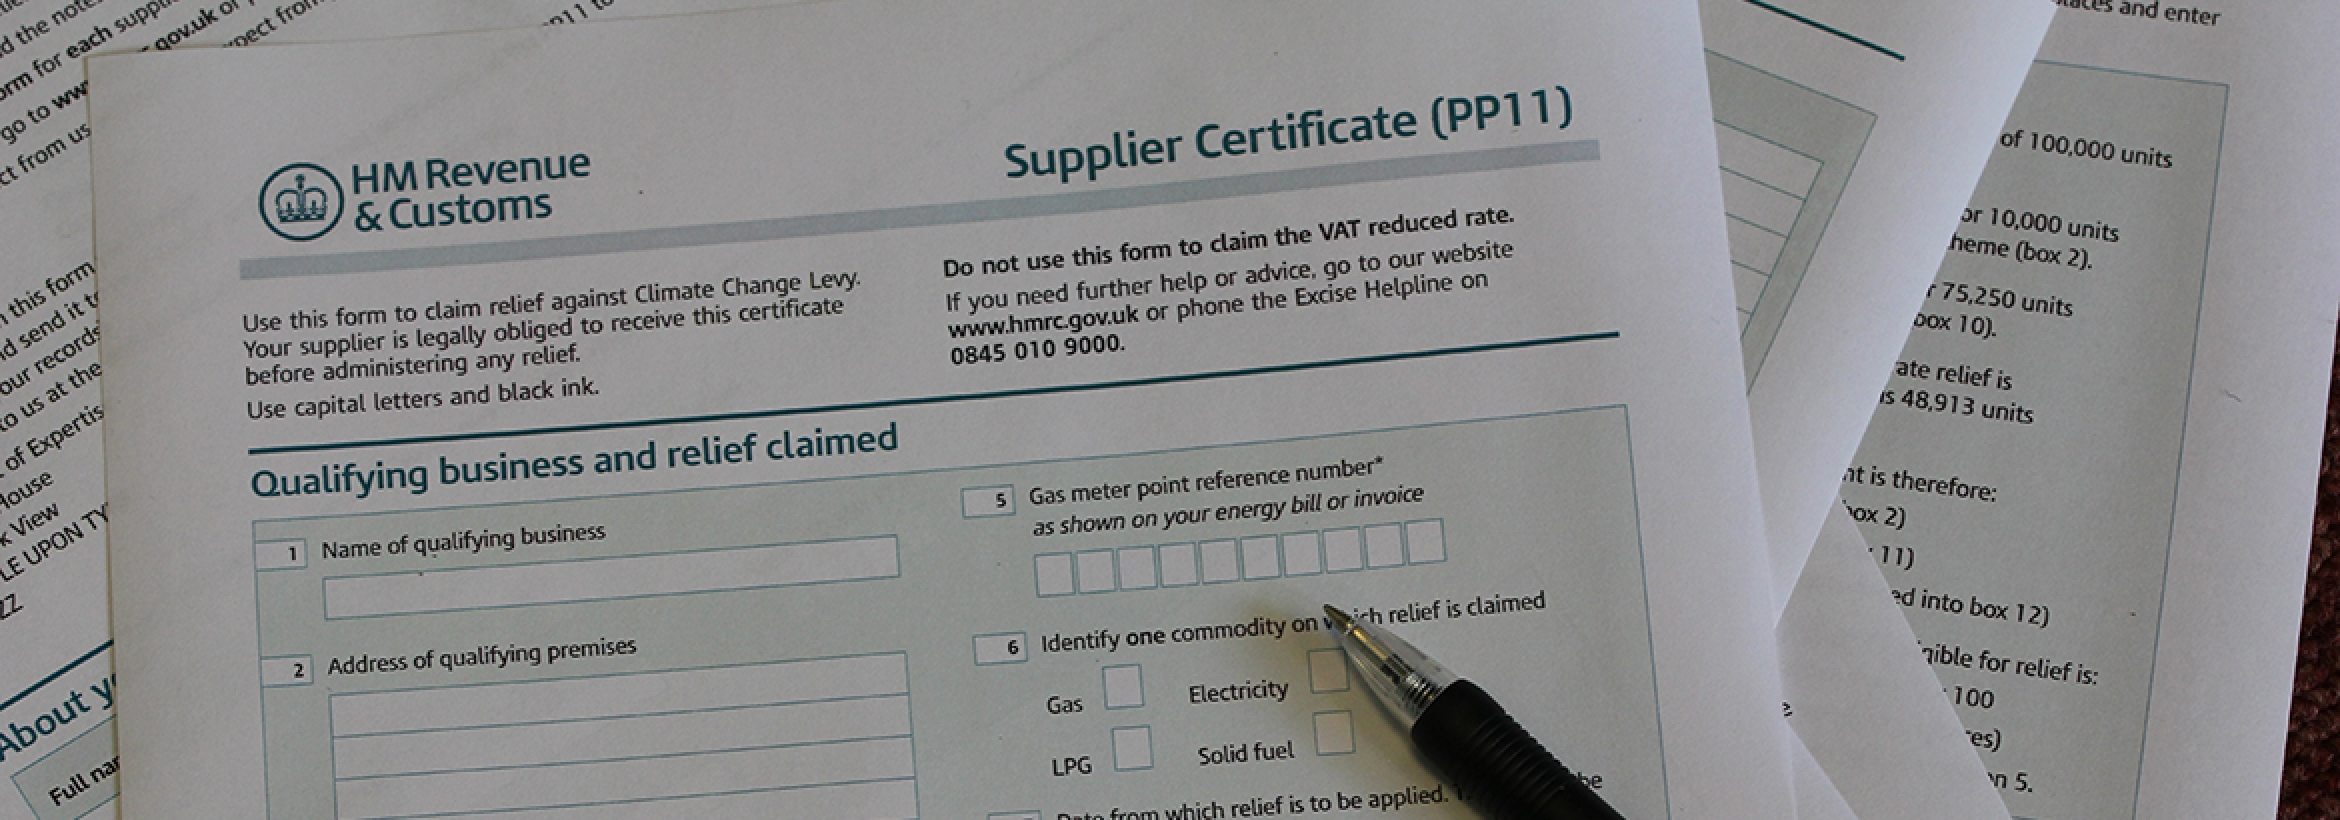 Climate Change Levy Supplier Certificate PP11 form used by NFU Energy team to help clients save up to 90% on their Climate Change Levy tax